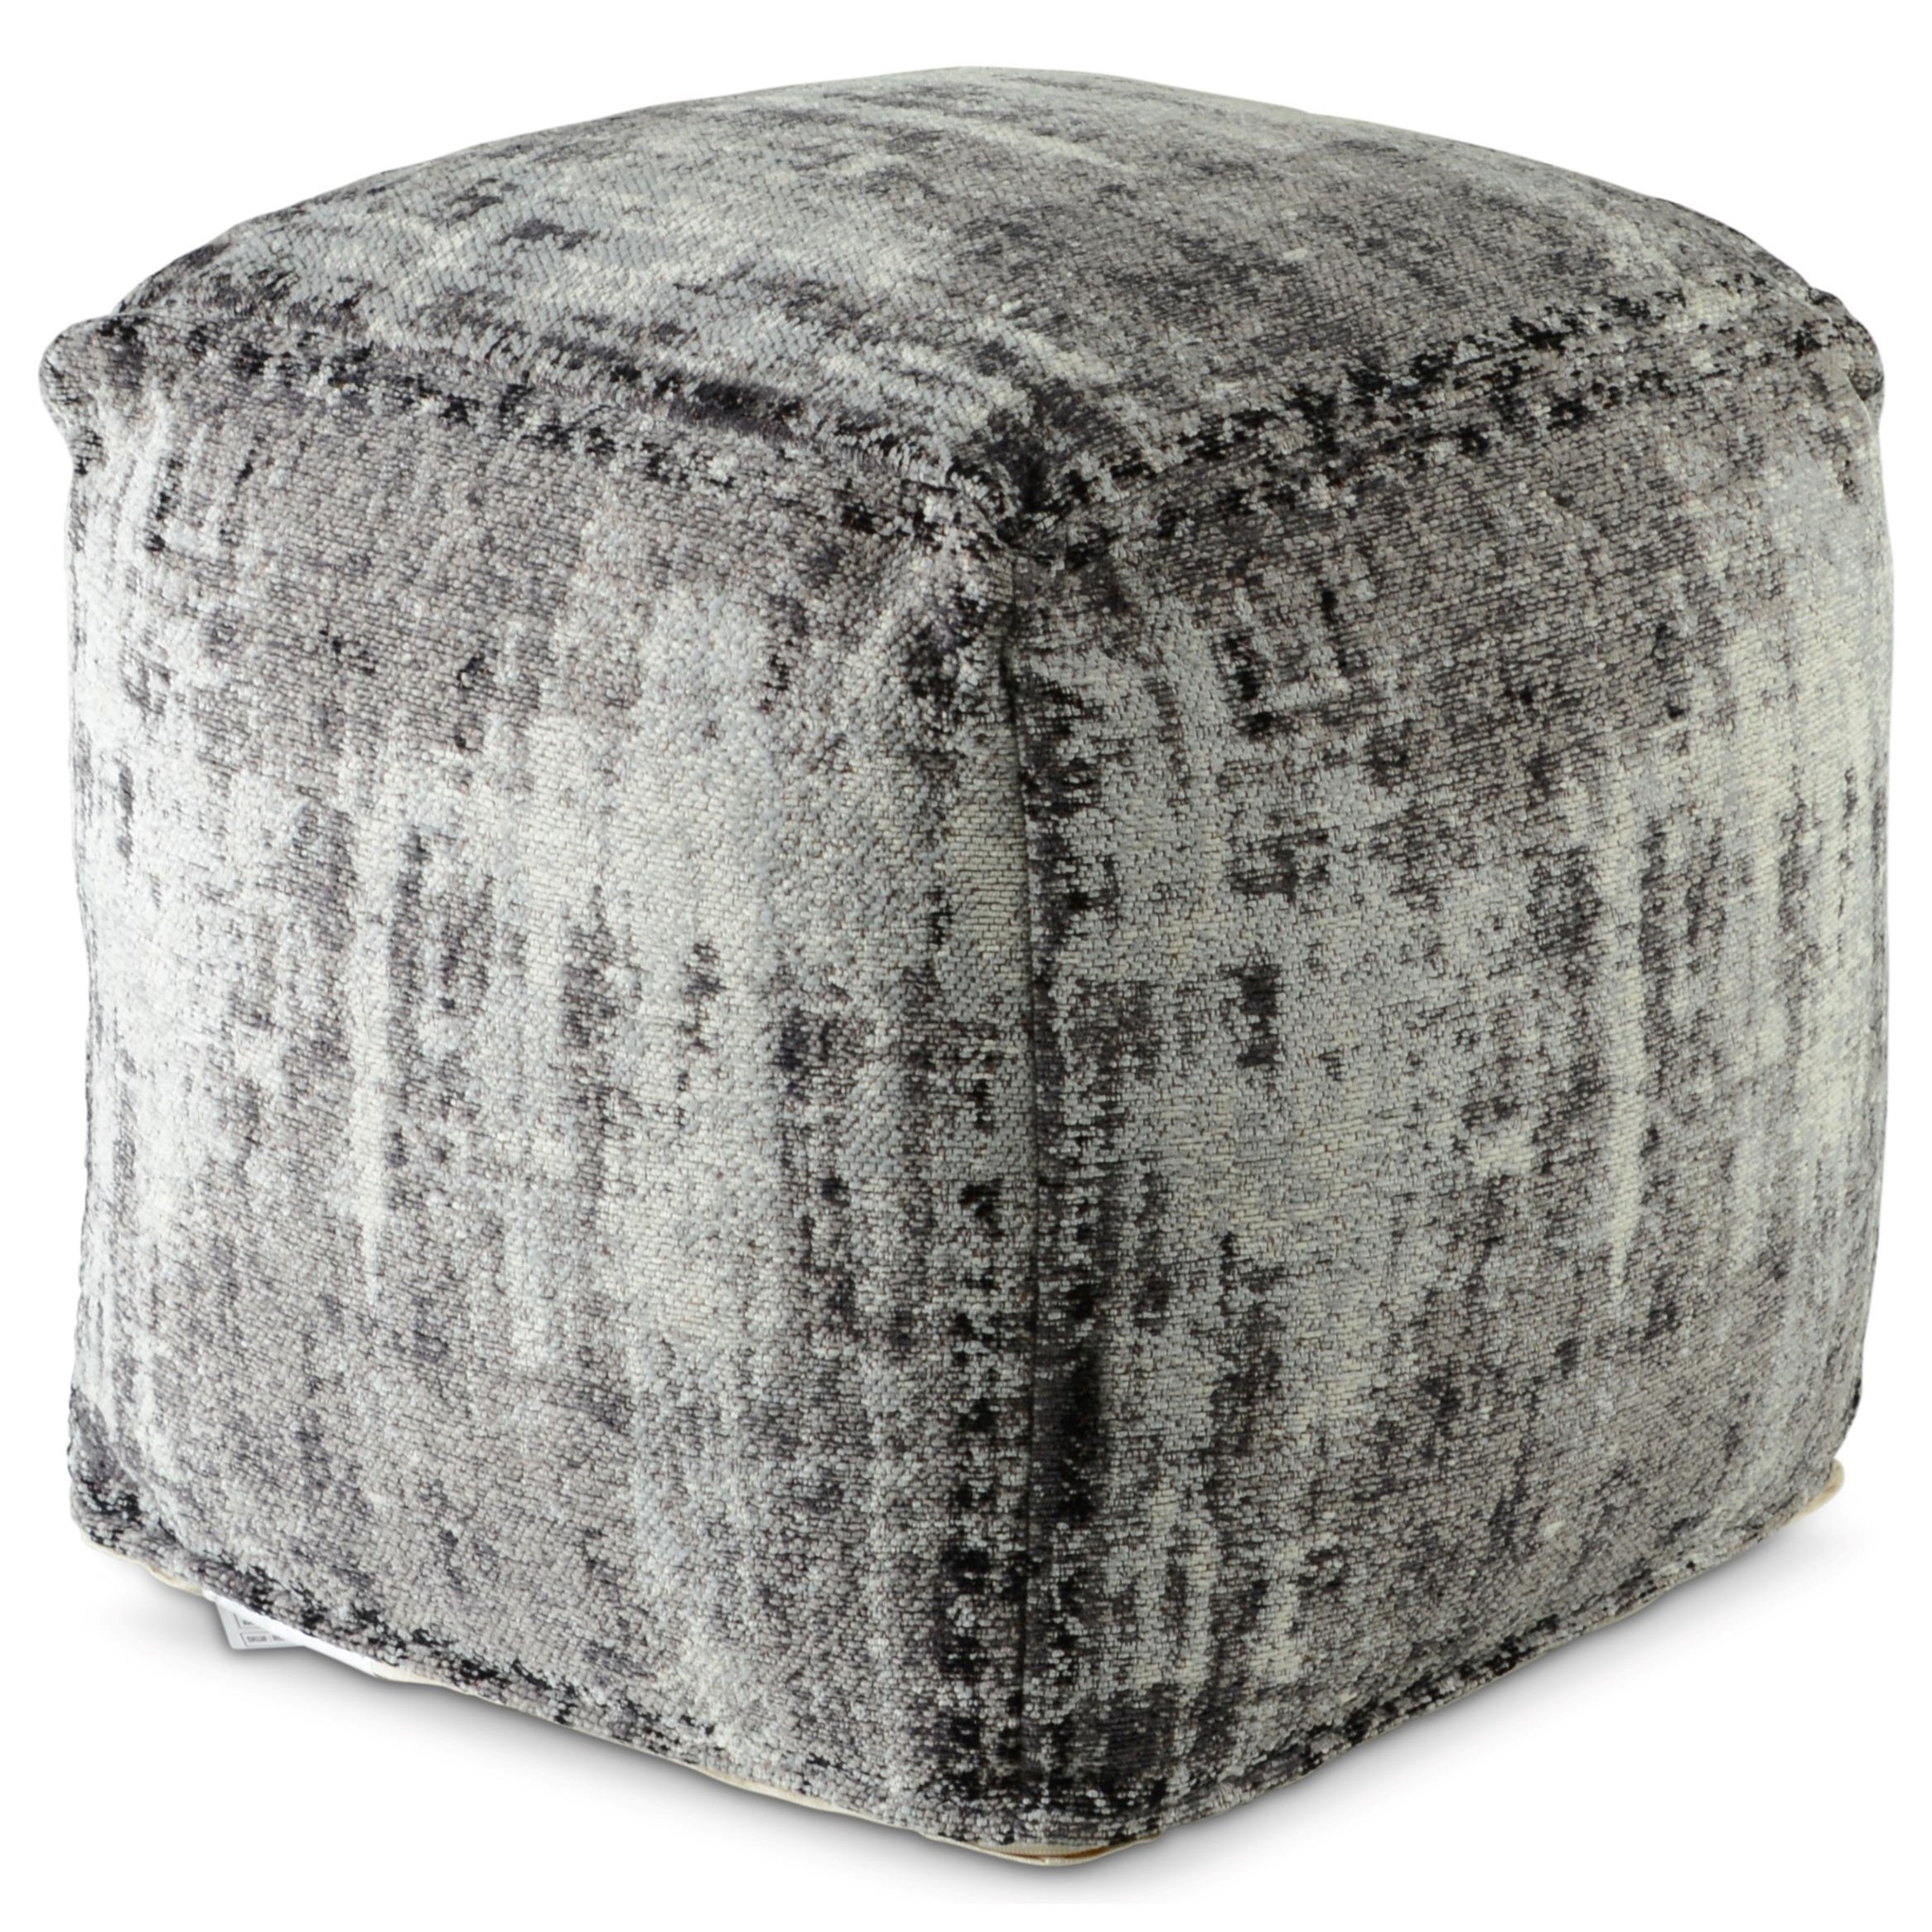 Hazel Handwoven Square Pouf by Star at EFO Furniture Outlet